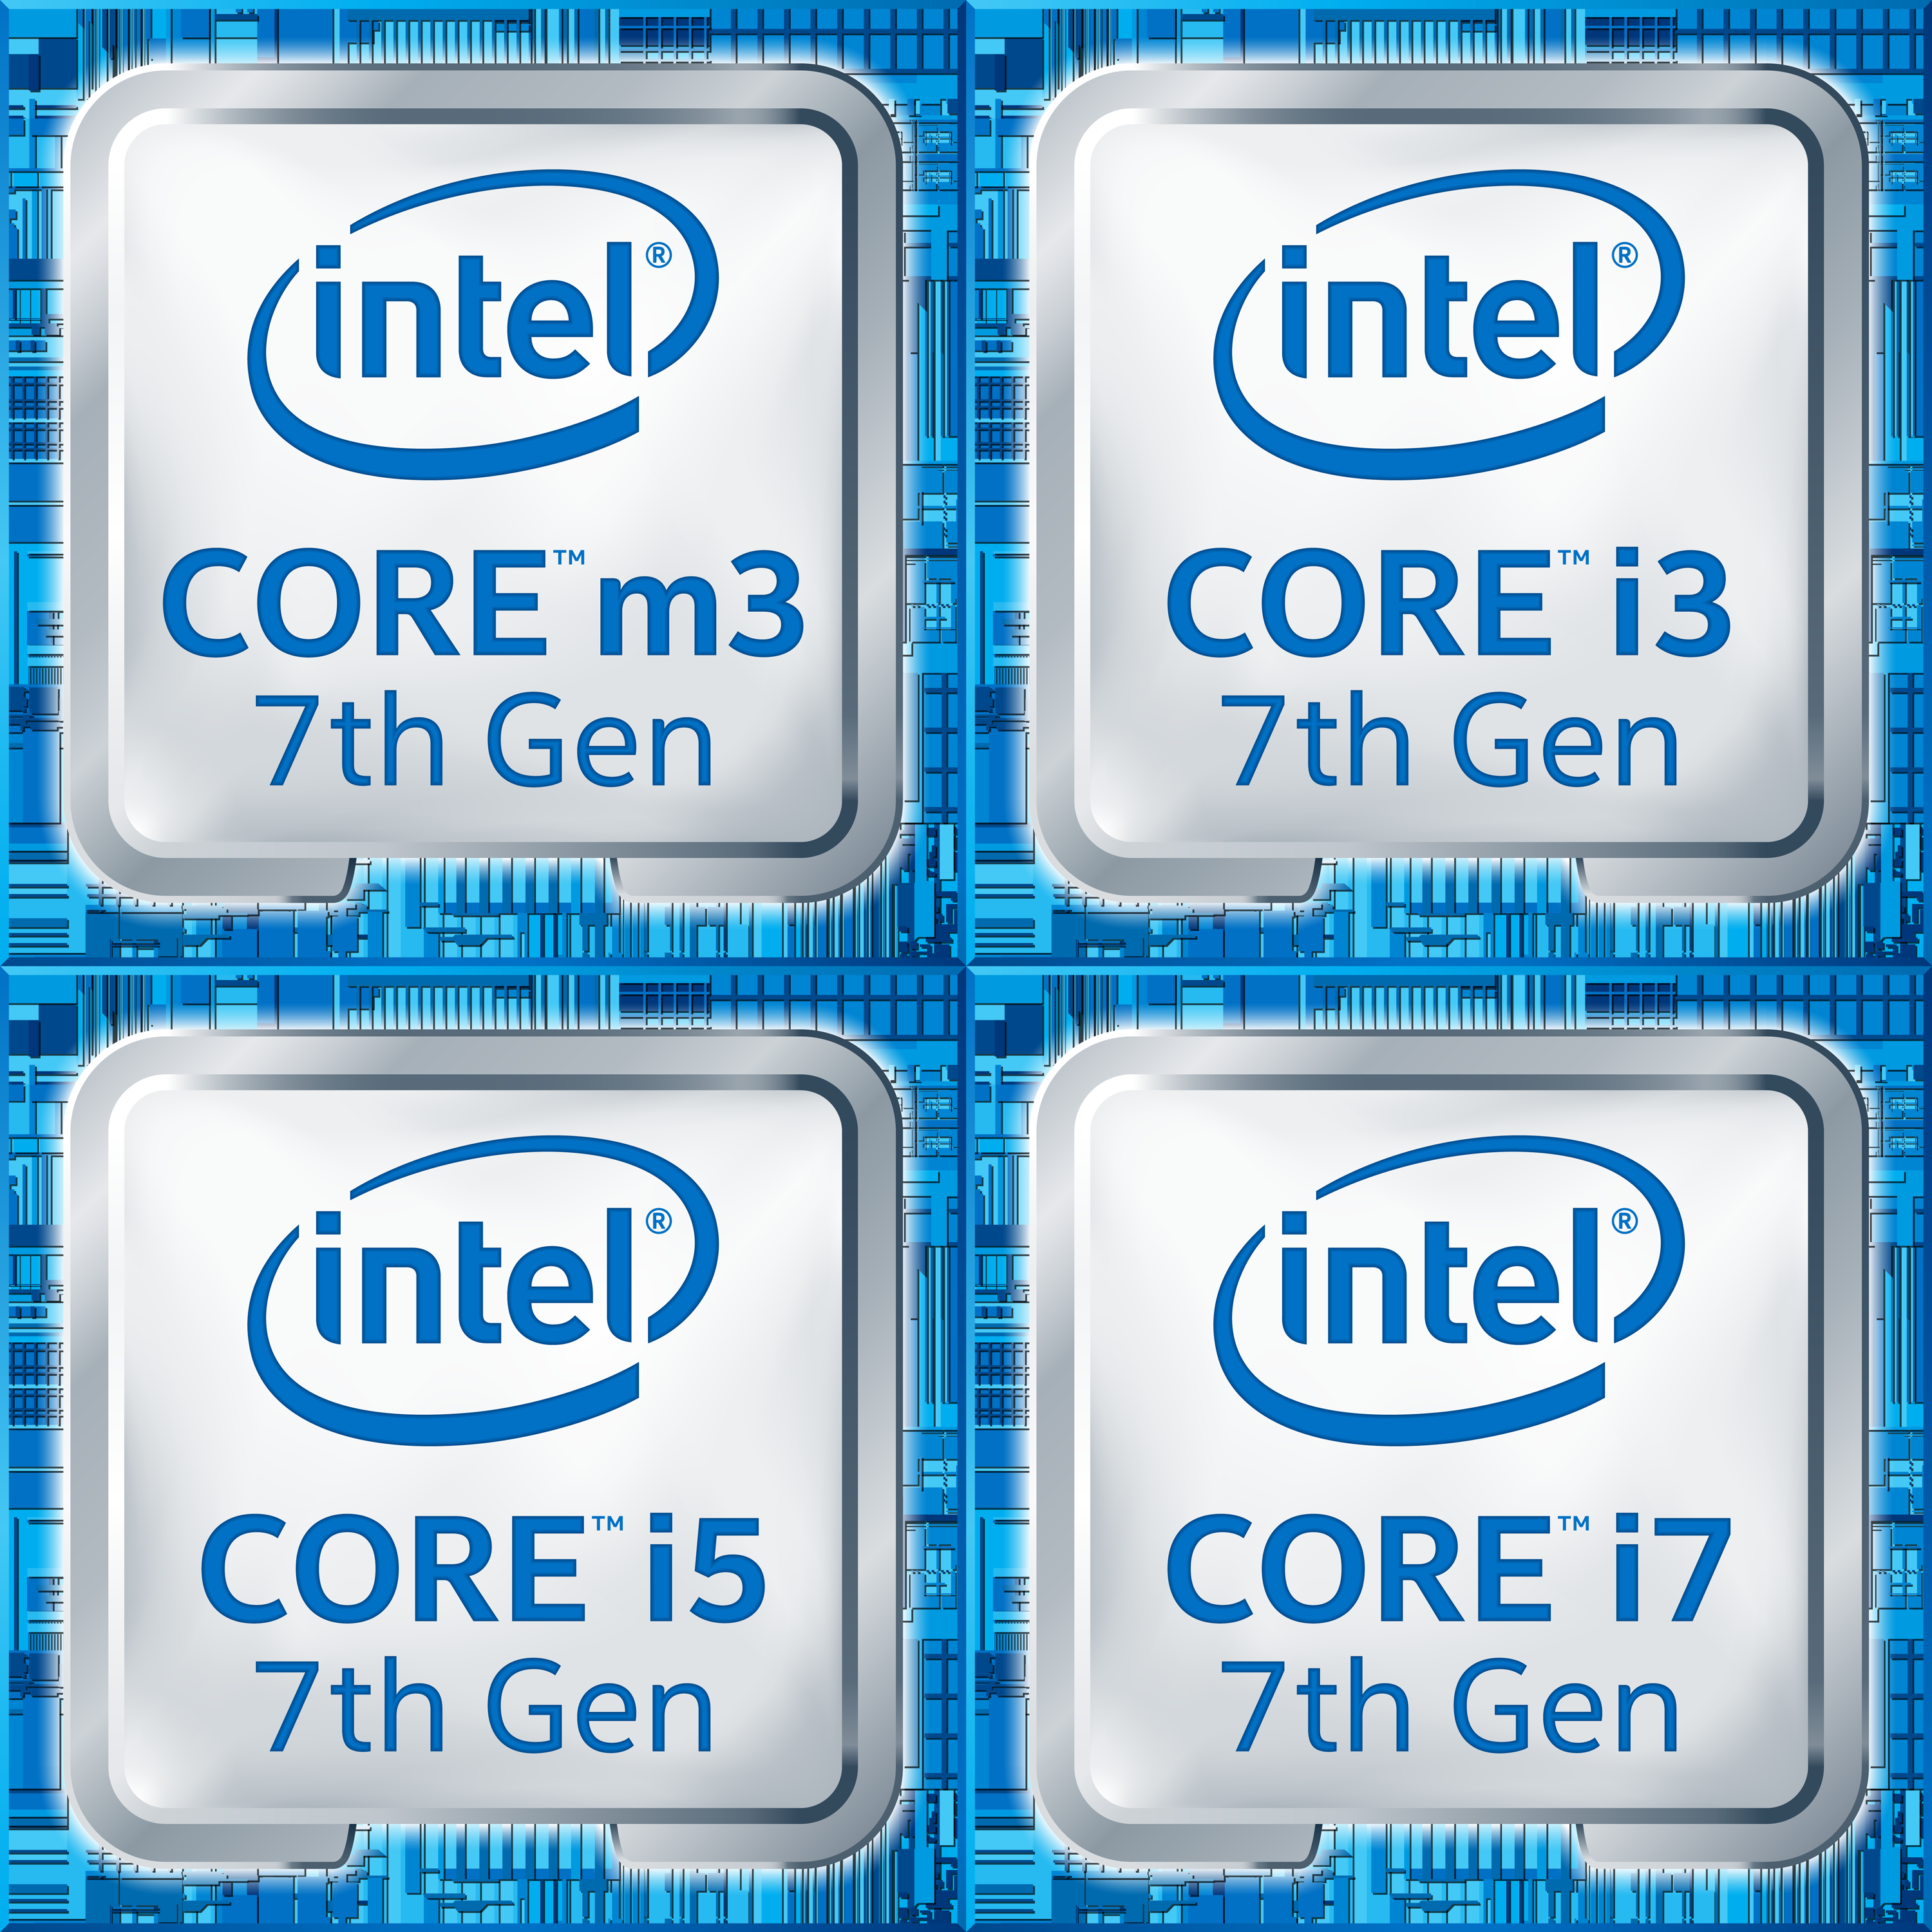 The New Cpus Updates To Core M Branding Intel Announces 7th Gen Stiker Laptop Pc I3 I5 Nvidia Marketing